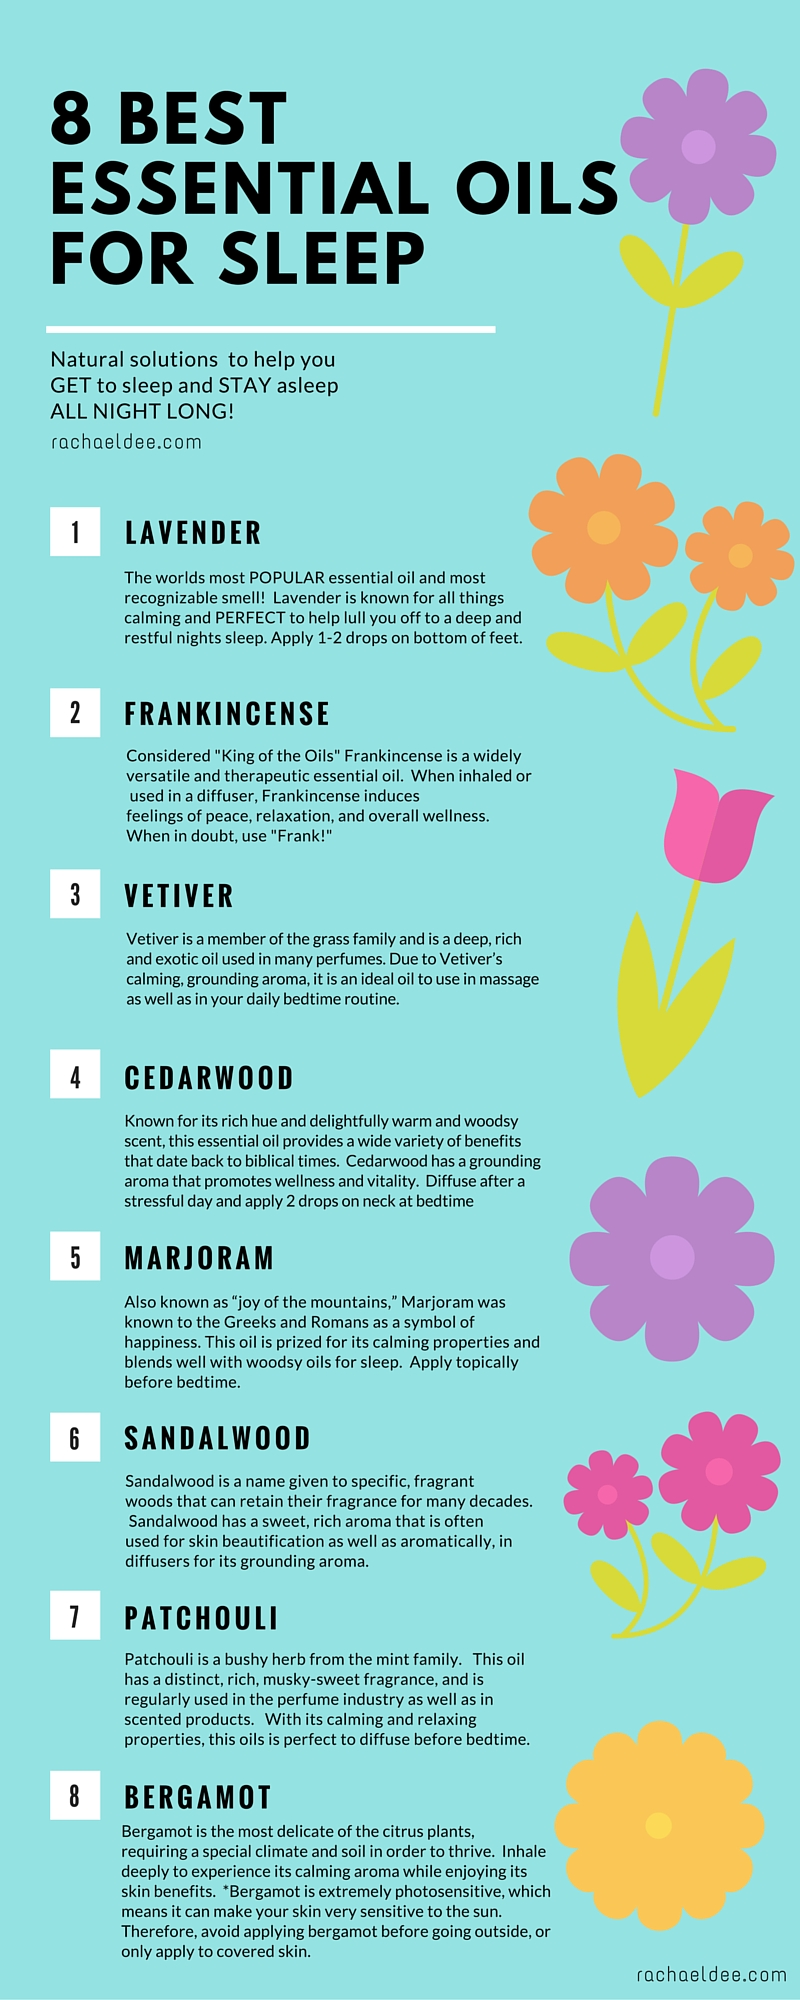 8 Best Essential Oils To Help You Get To Sleep And Stay Asleep All Night Long Rachael Dee